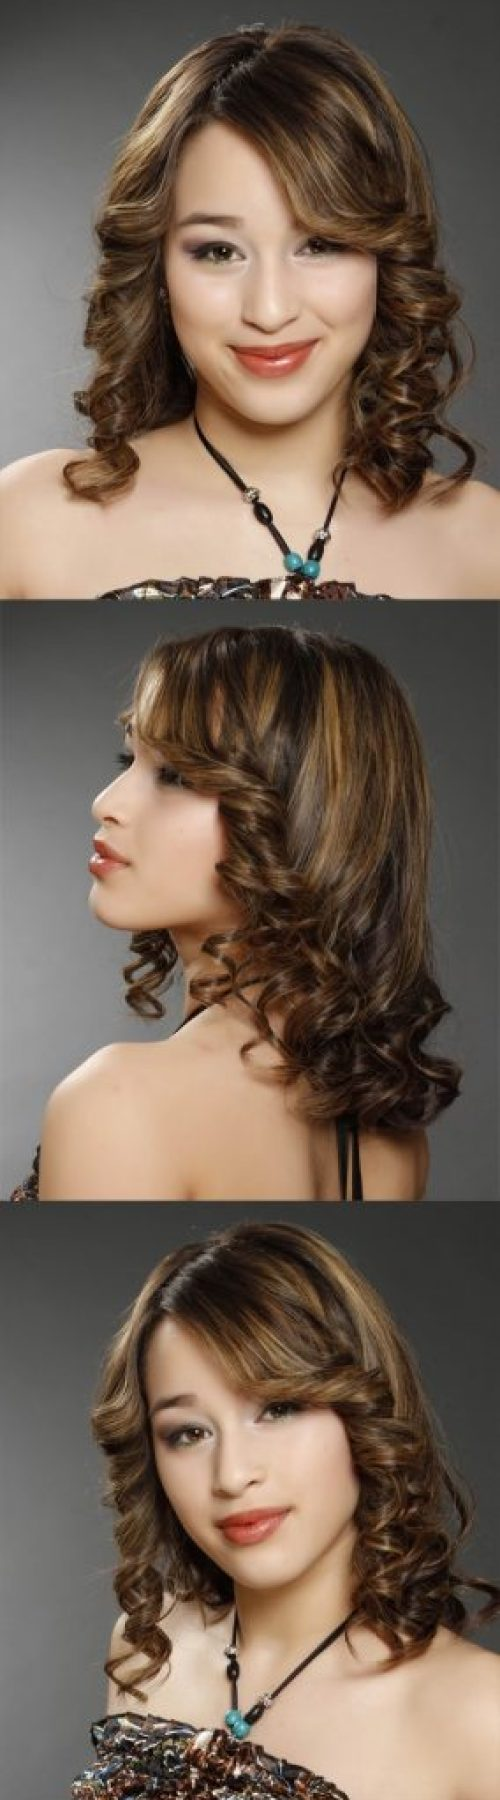 Highlighted Side Parted Medium Hair with Curls